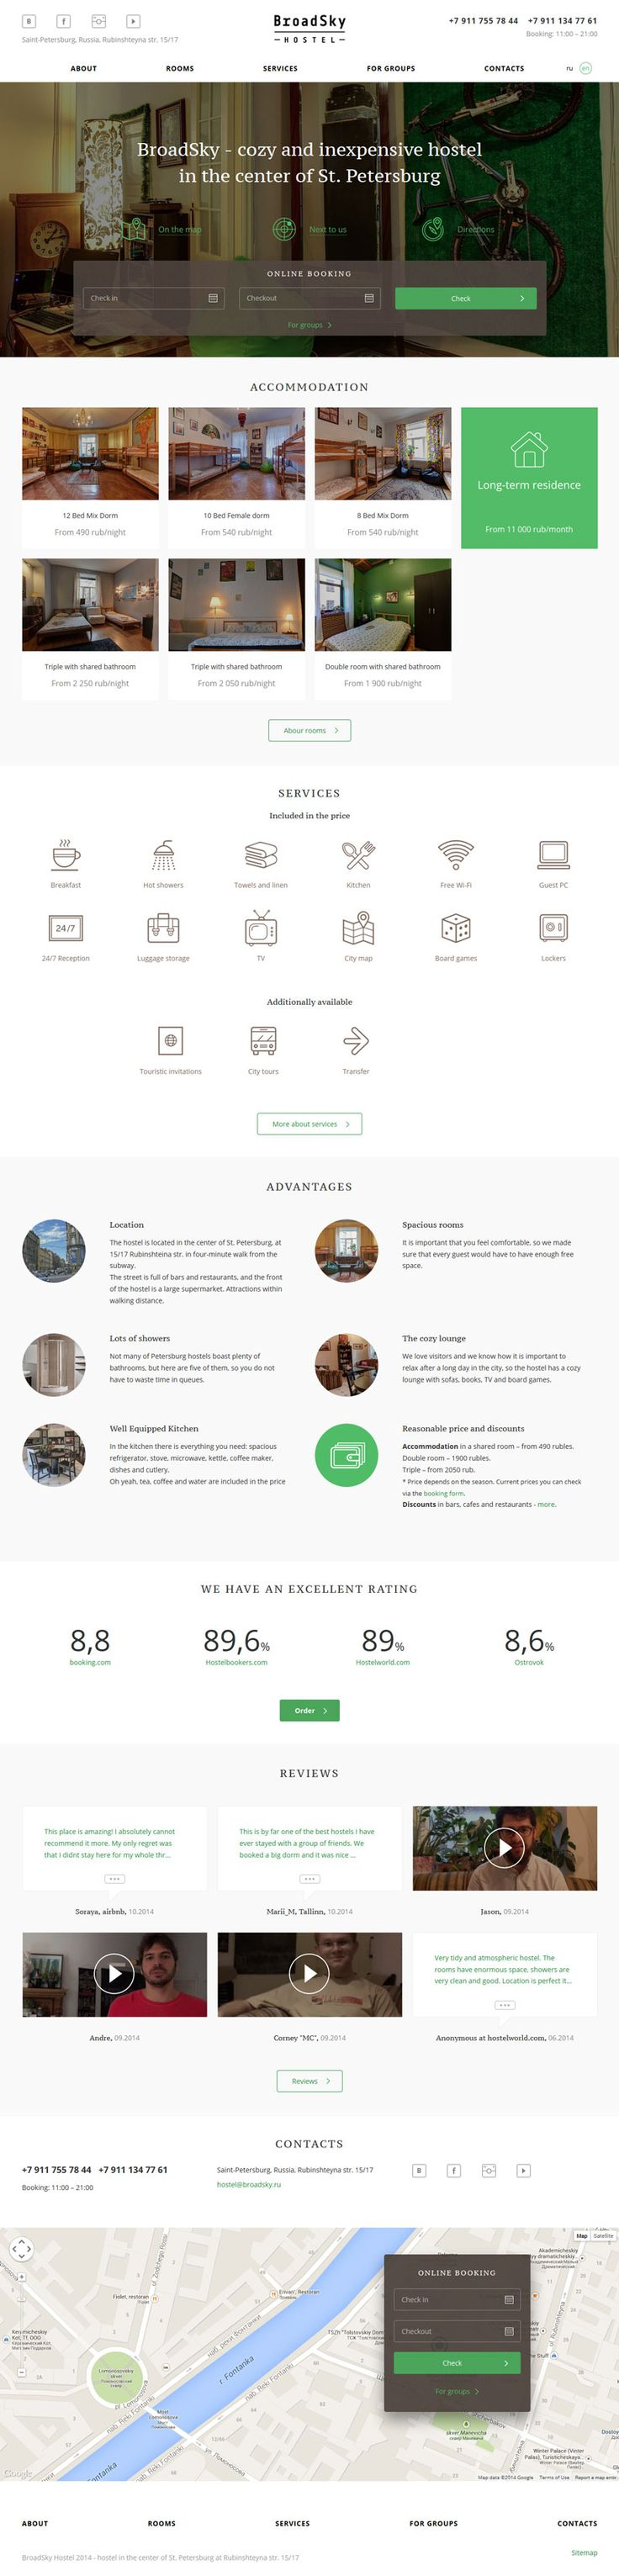 Flat Design Website; Example; Category: Inspiration; Name Site: BroadSky; Type Website: Hostel; Bold; Color: Green; Line Icons.